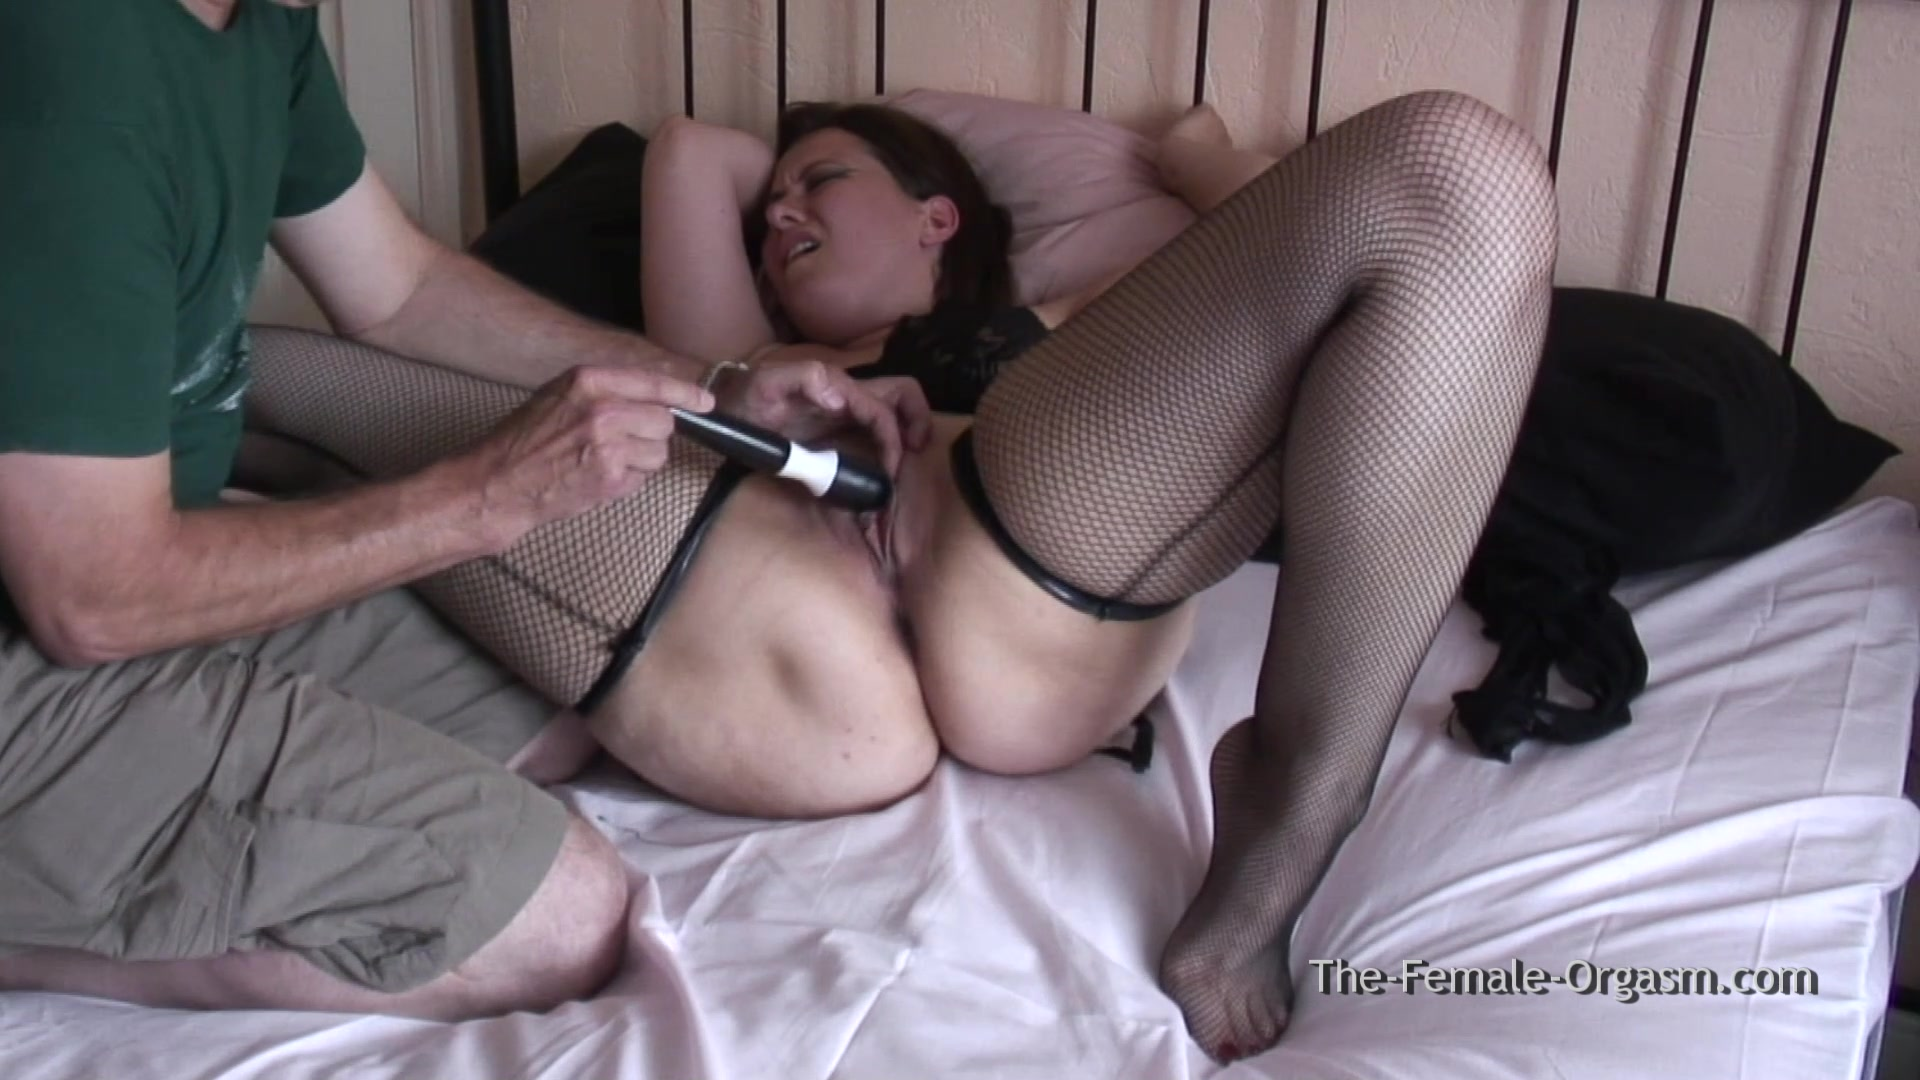 Femorg babe in fishnets multiple dripping wet pussy orgasms